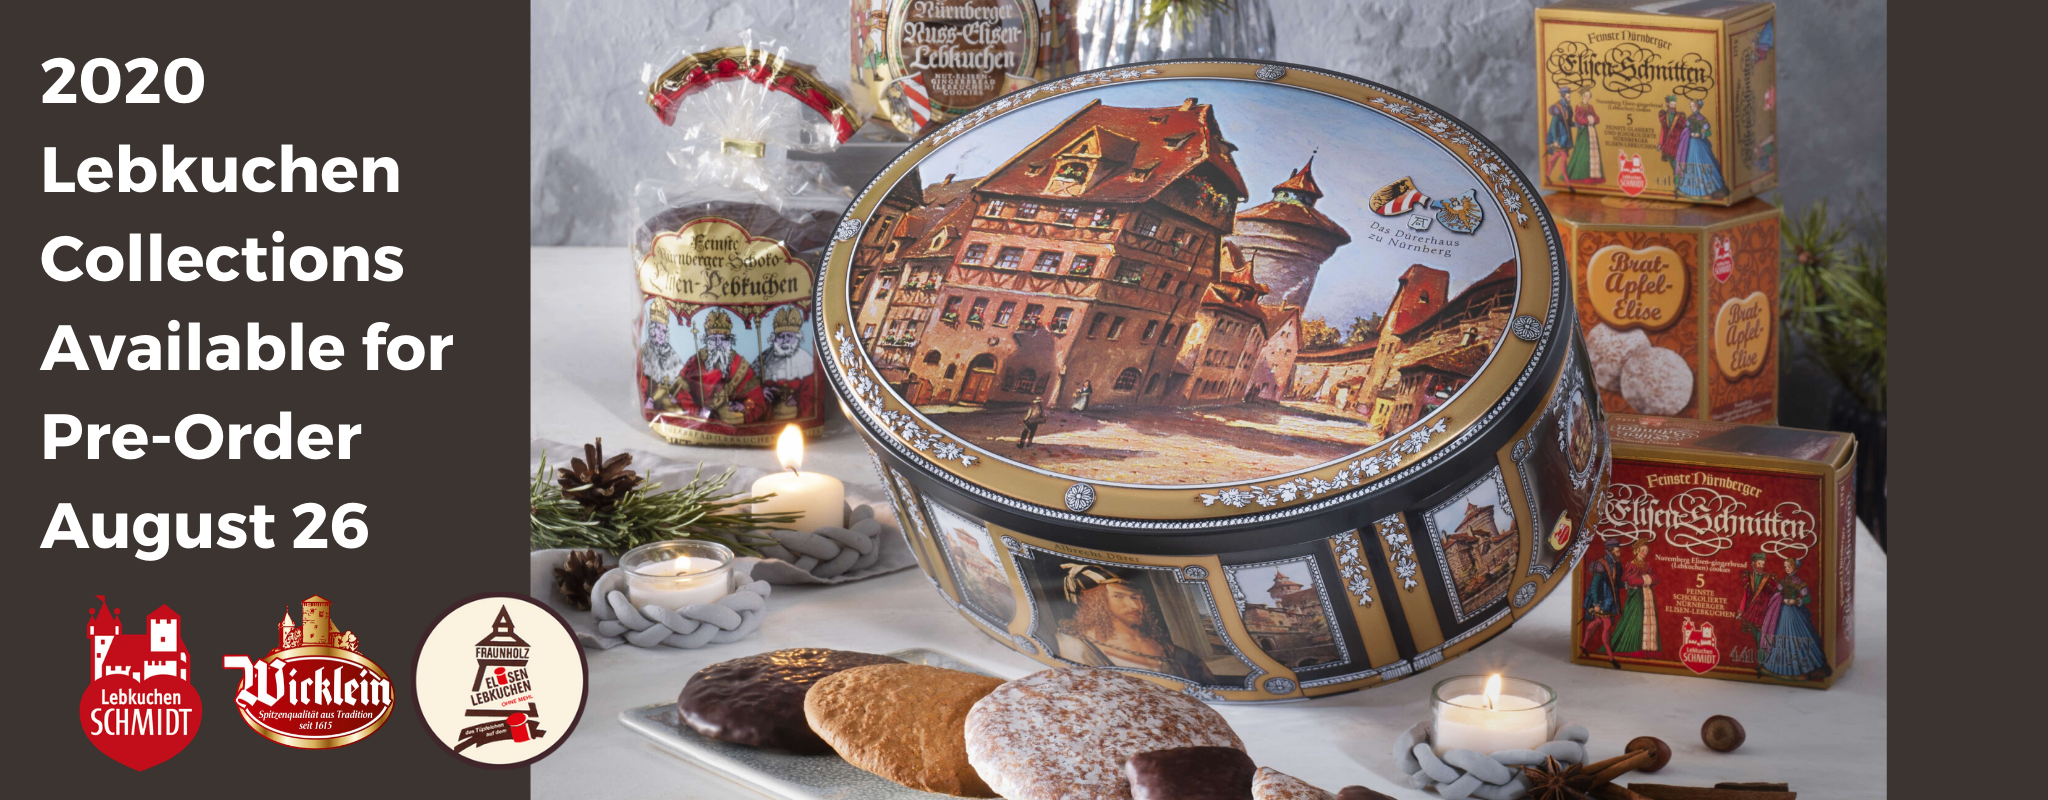 Gingerbread World Authentic Nuremberg Lebkuchen. German Gingerbread from Schmidt, Wicklein and Fraunholz